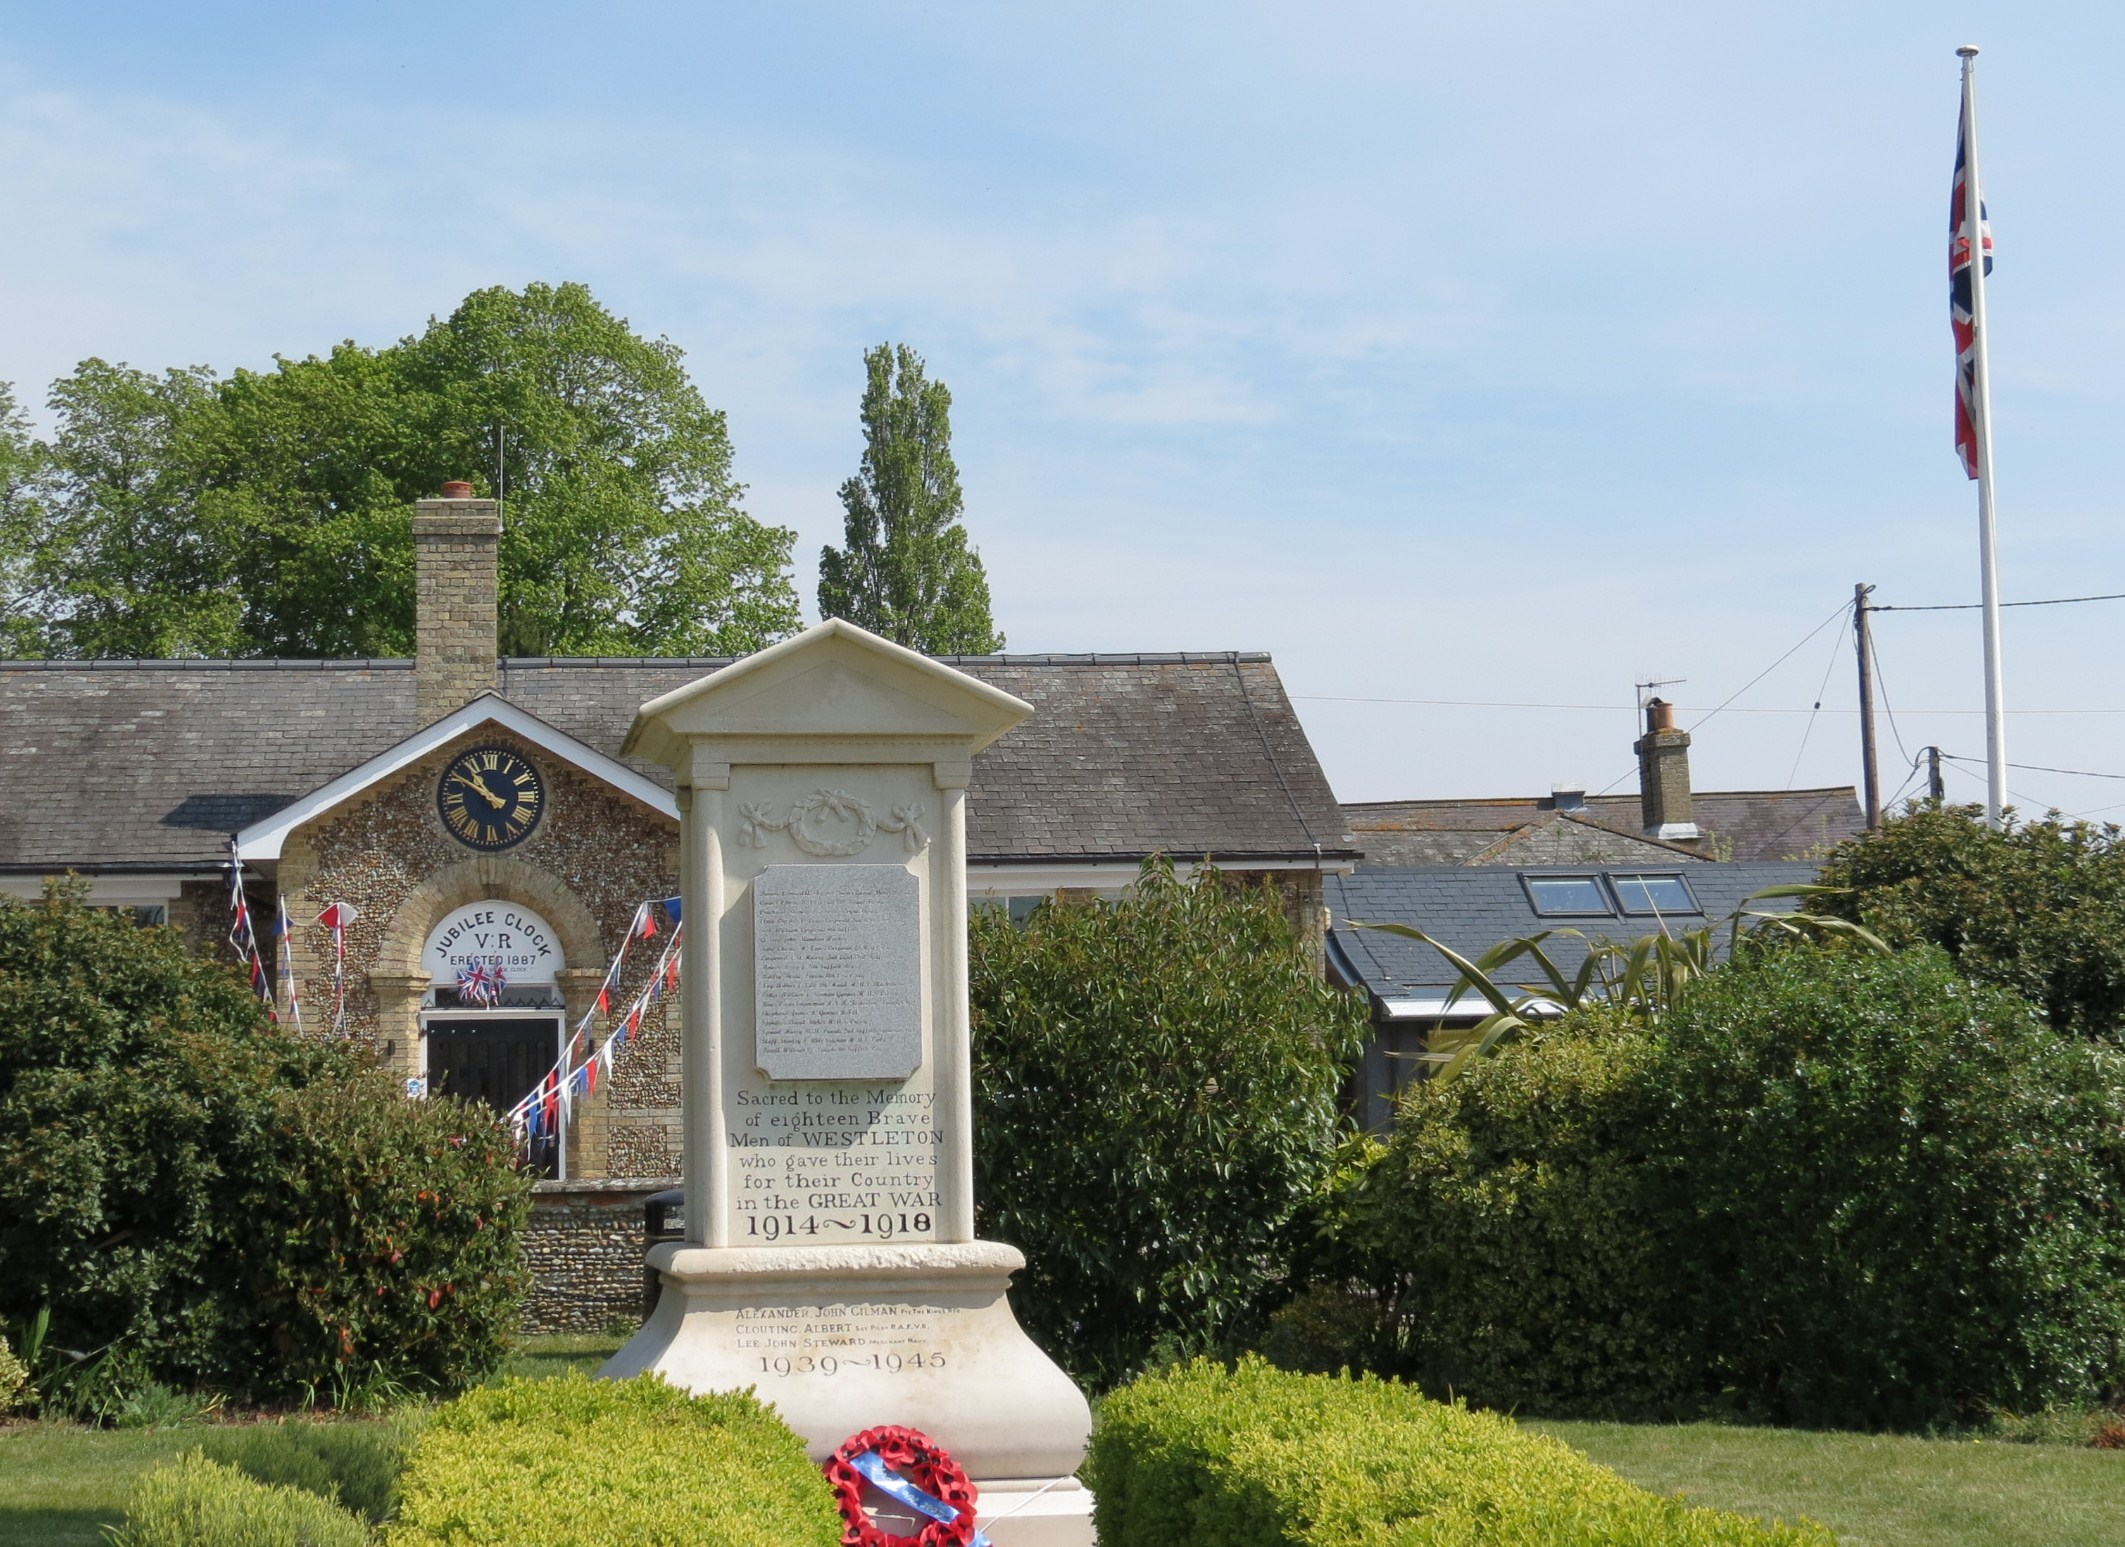 Westleton Village Hall also featuring War Memorial